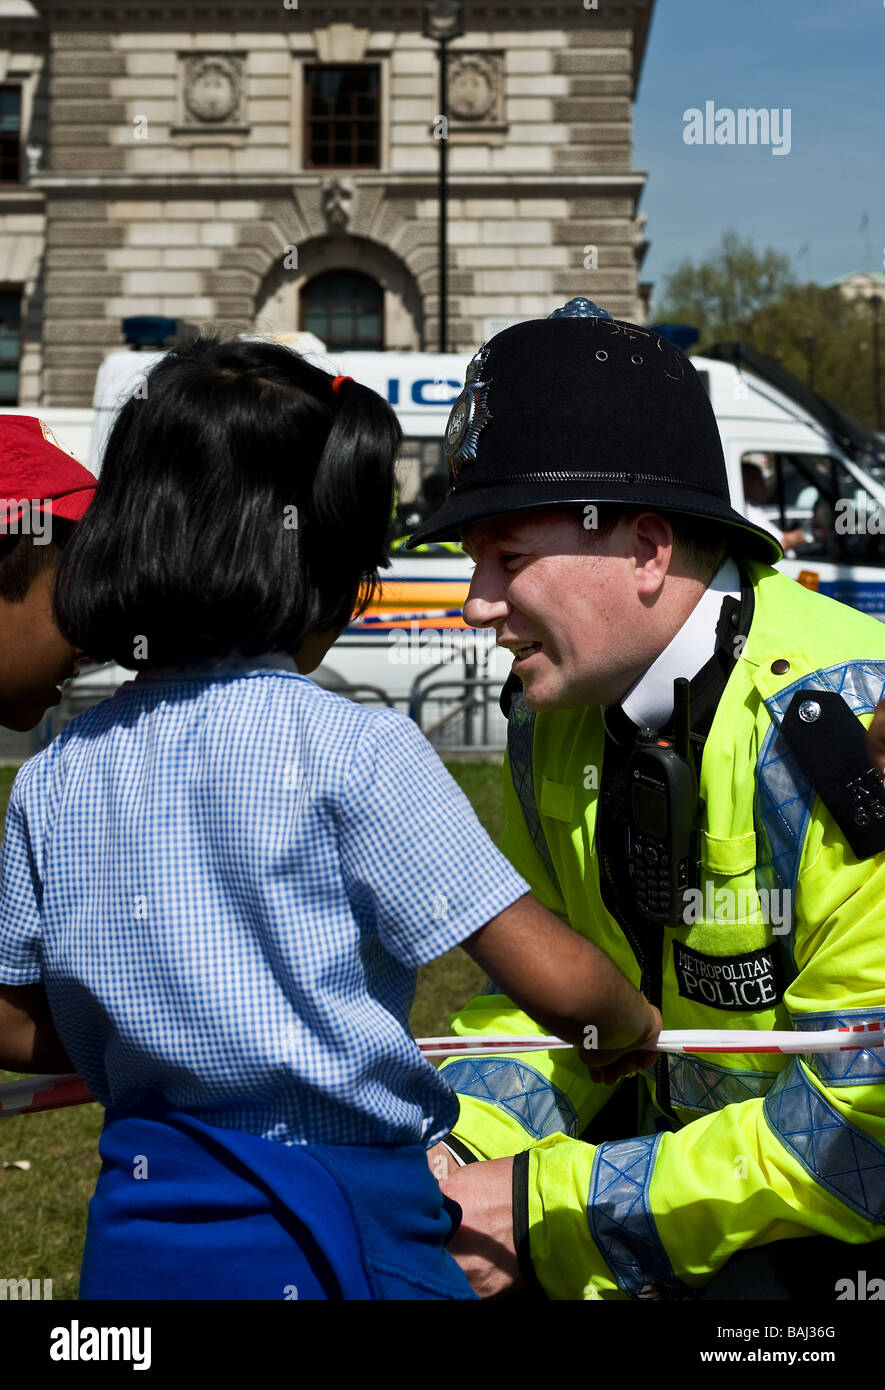 A friendly Metropolitan Policeman talking to schoolchildren at the Tamil protest in London.  Photo by Gordon Scammell - Stock Image